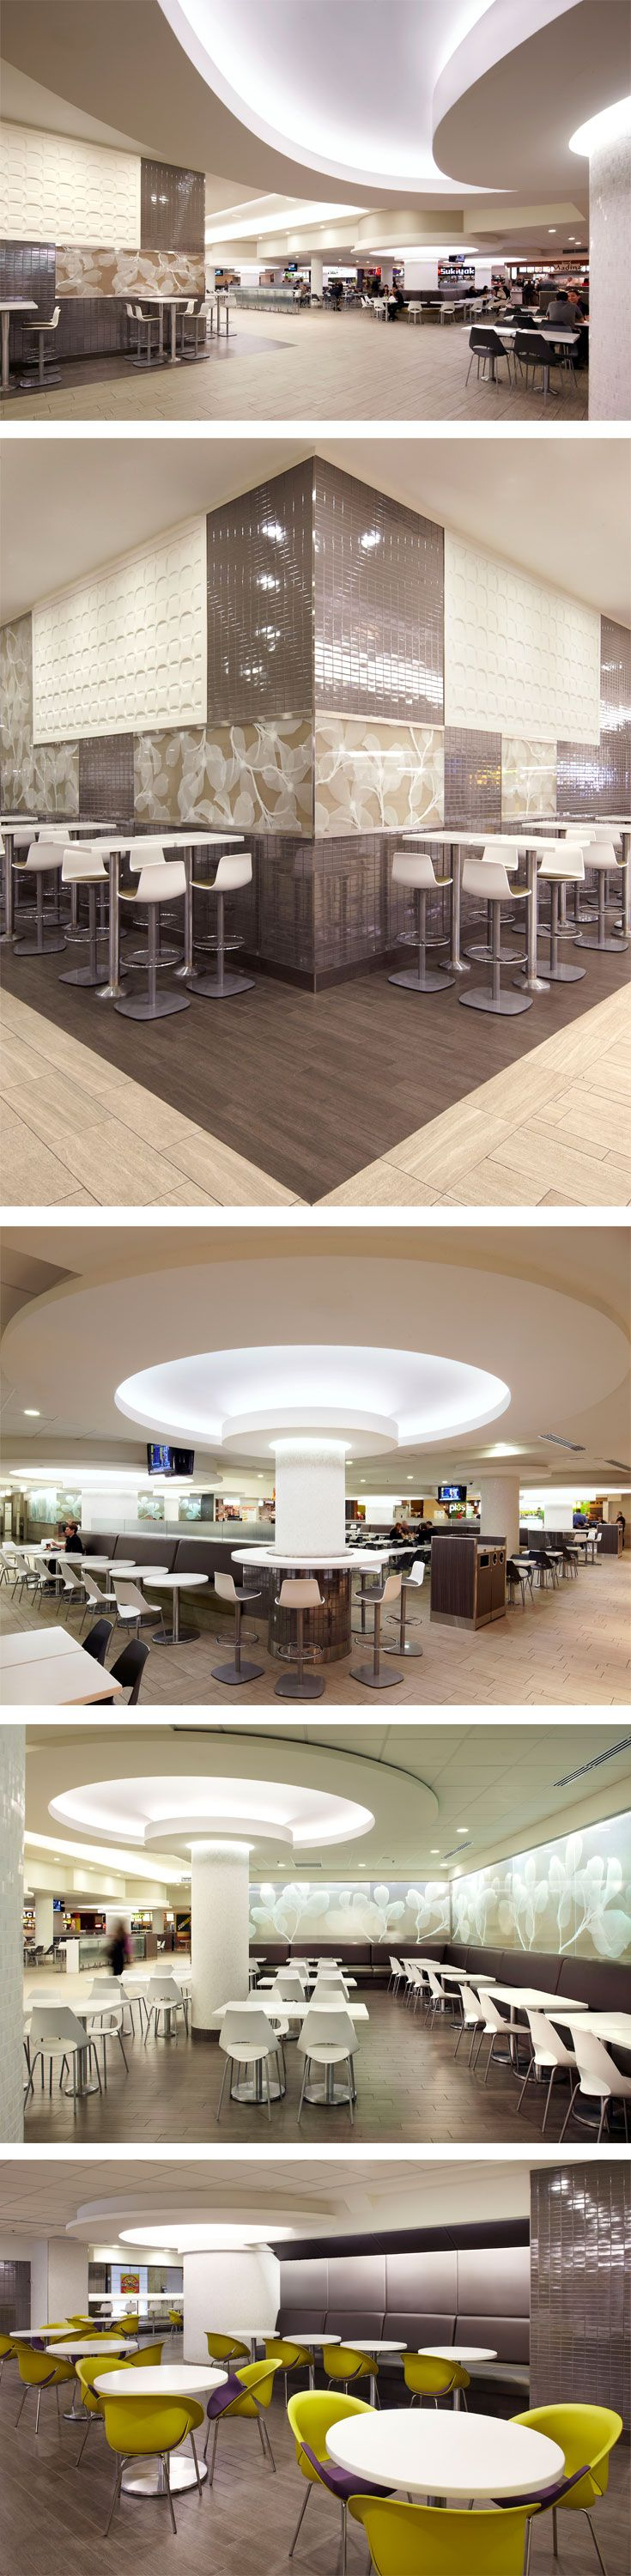 Food Court at Promenades Cathédrale in Montreal, QC - designed by GH+A (in collaboration with Le Groupe Archifin)